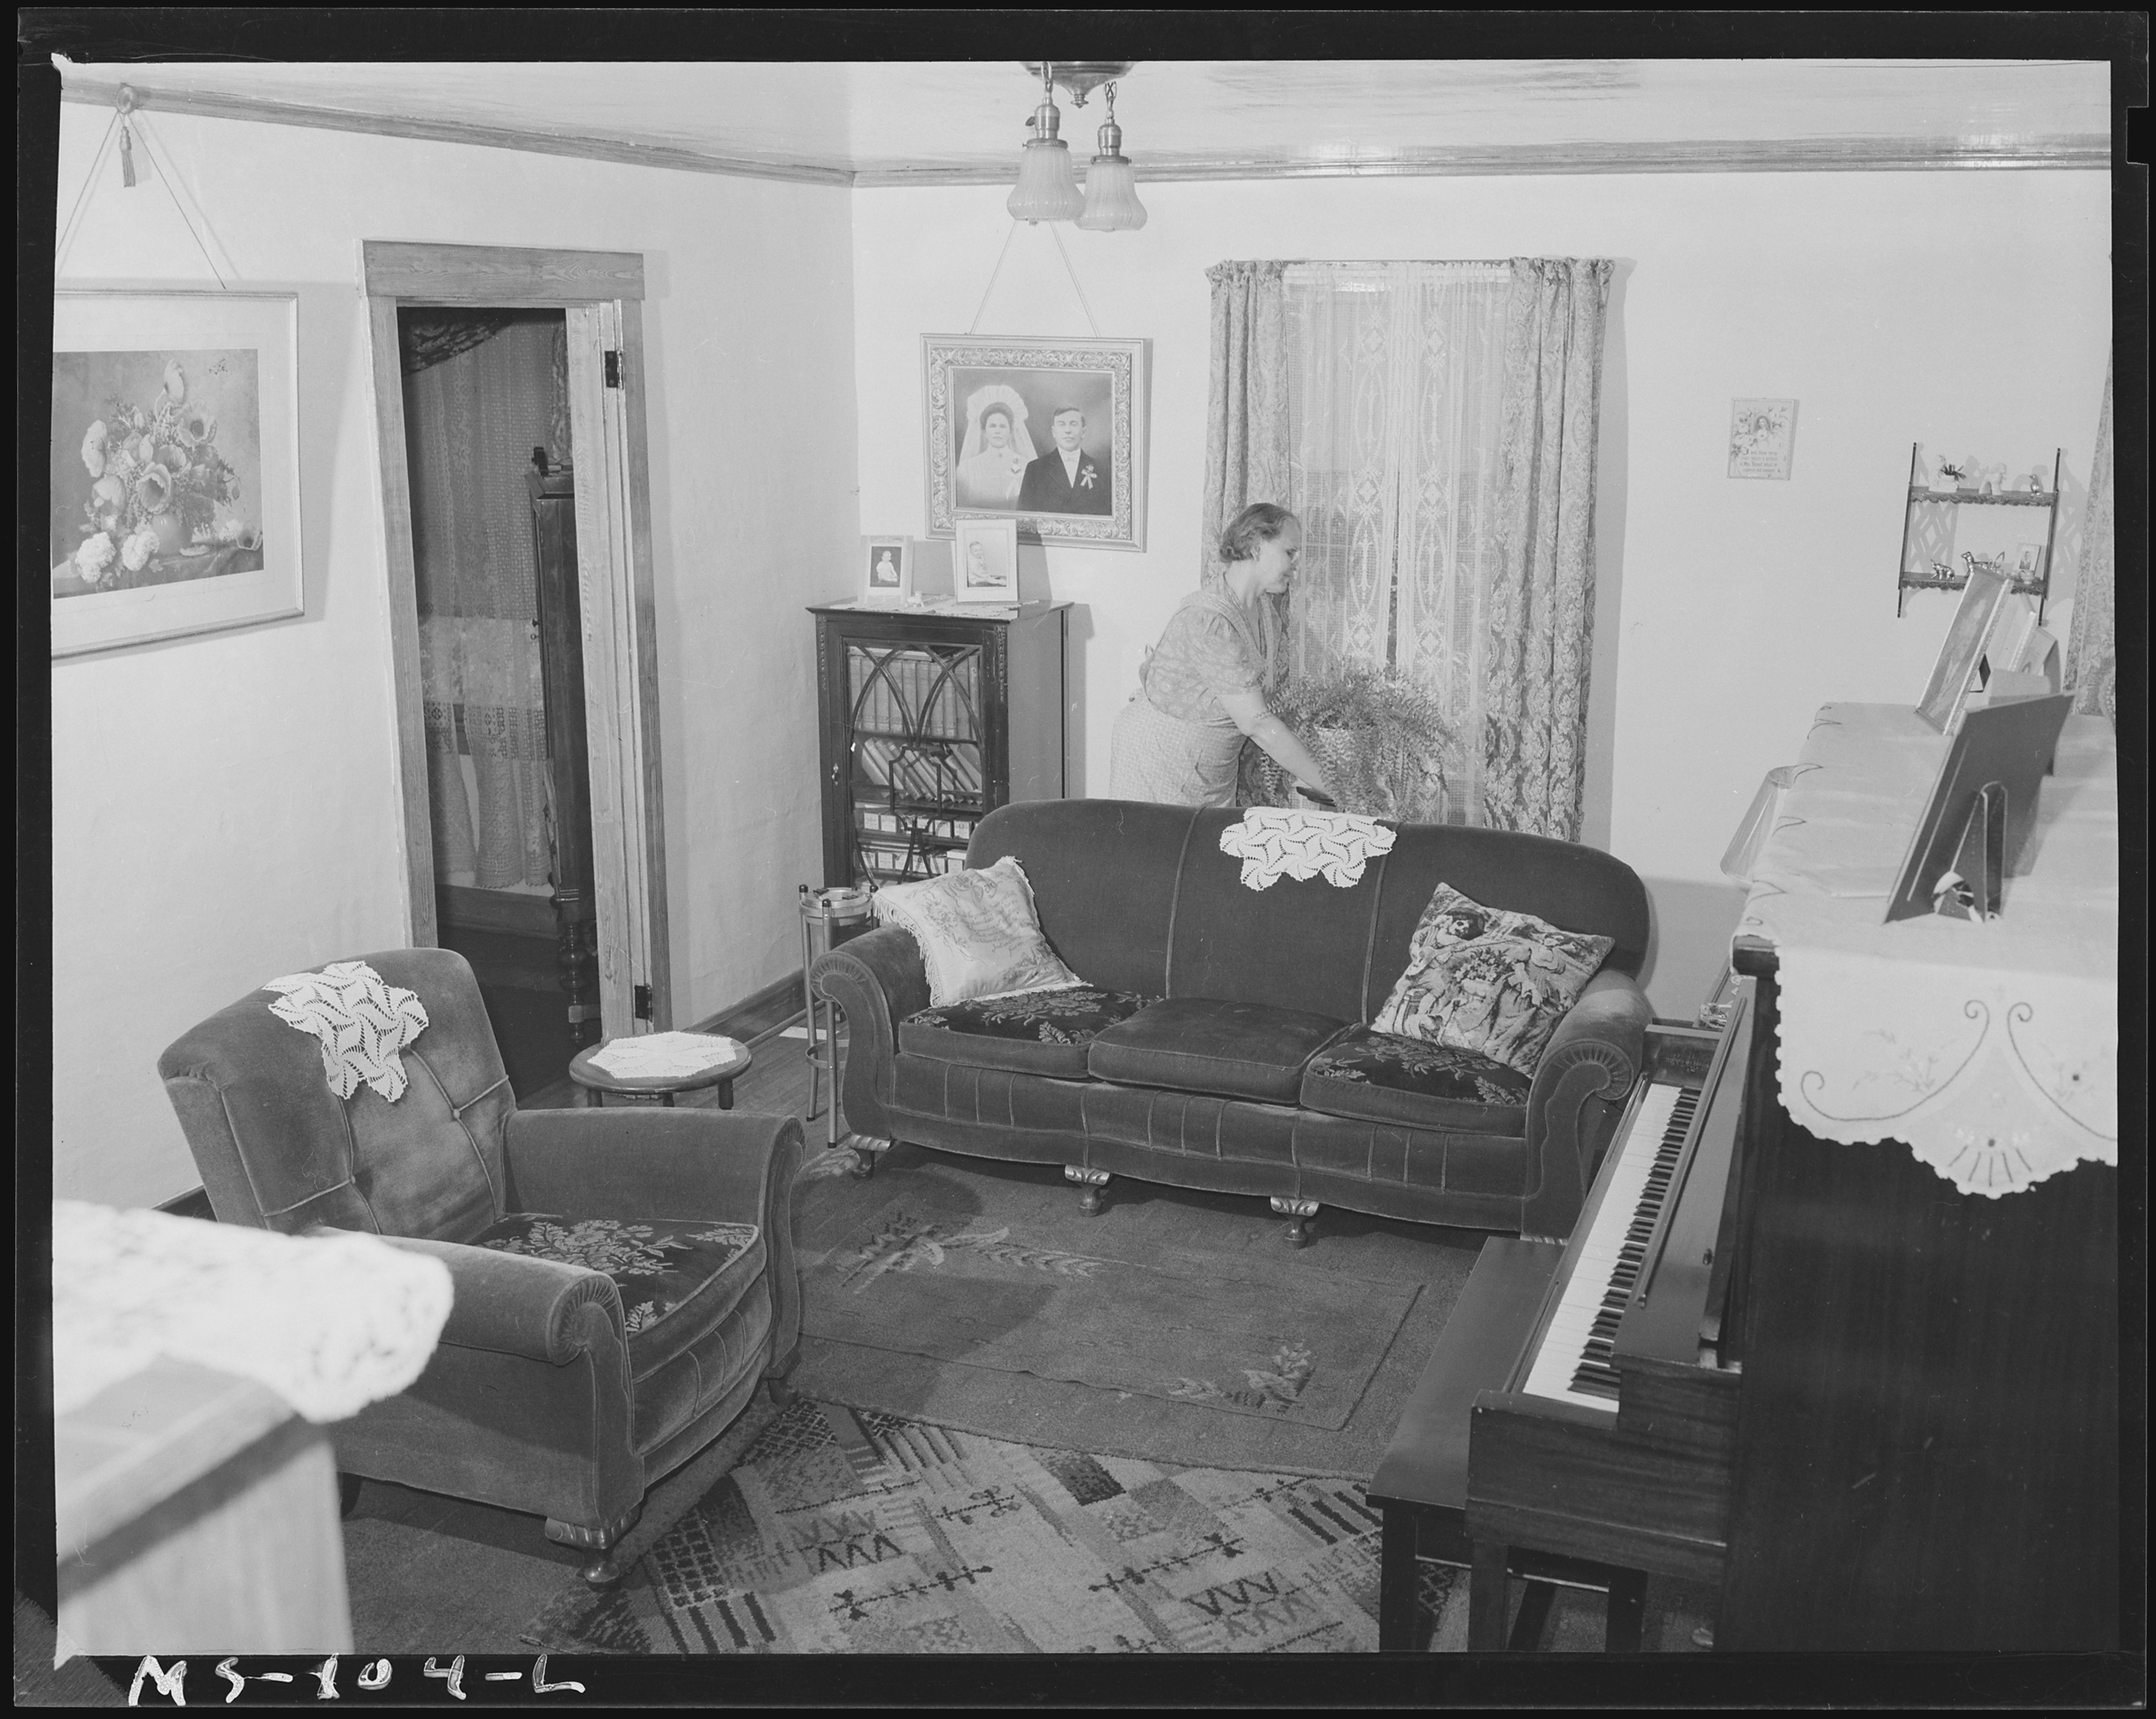 FileLiving Room Of Home Andrew Orlosky Miner Living In Company Housing